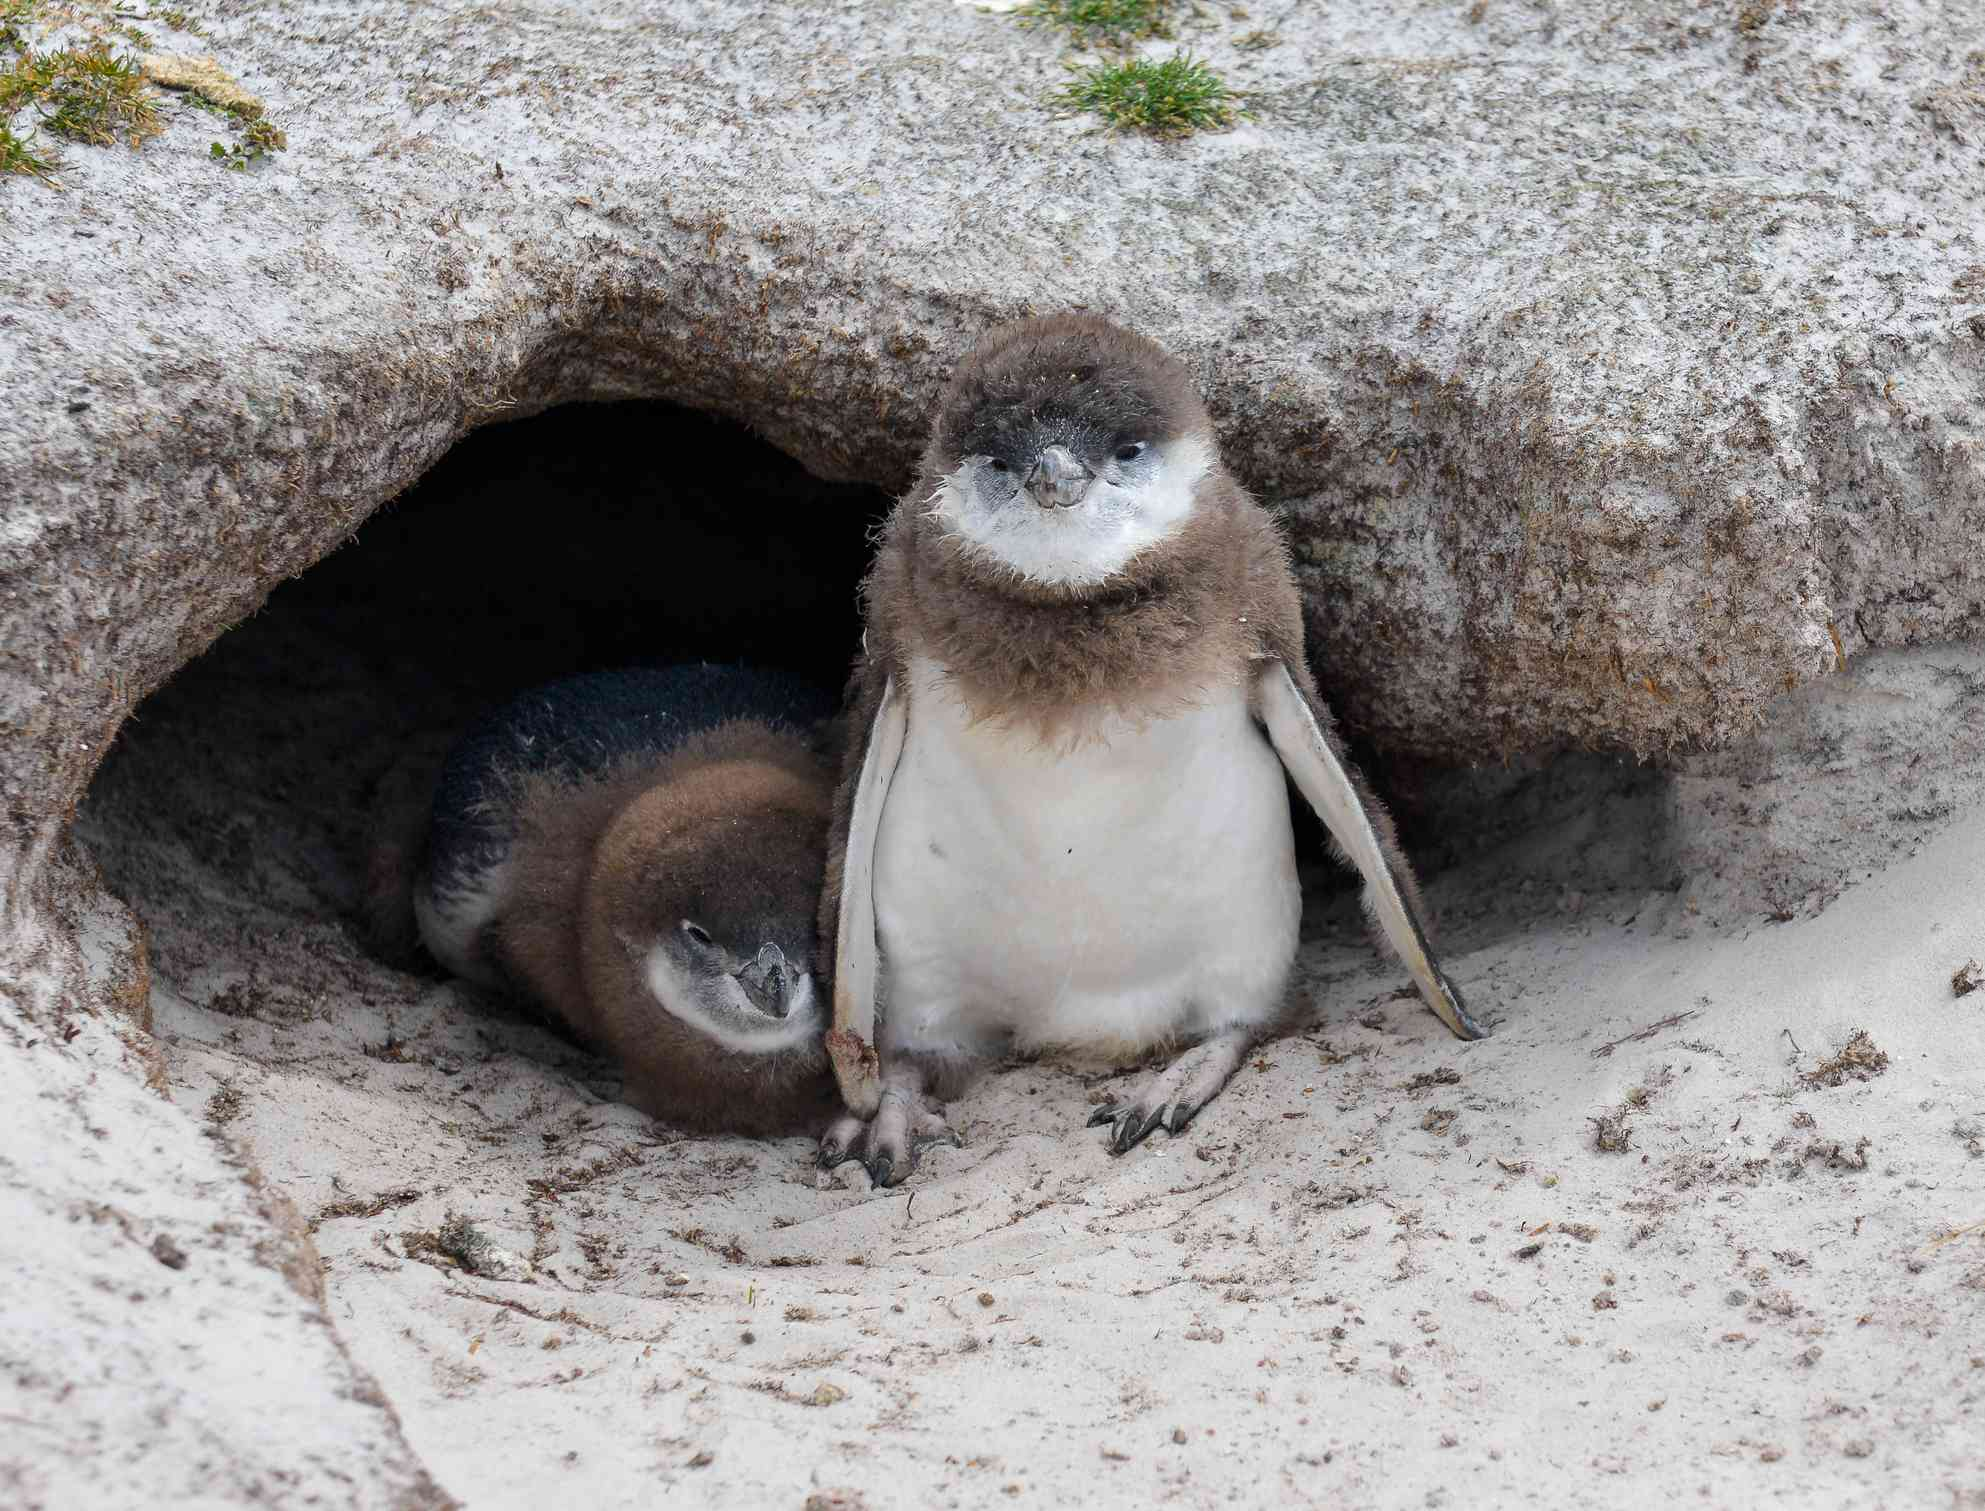 Young Magellanic Penguin chicks peep out from their nest burrow waiting for the parents to return with food.